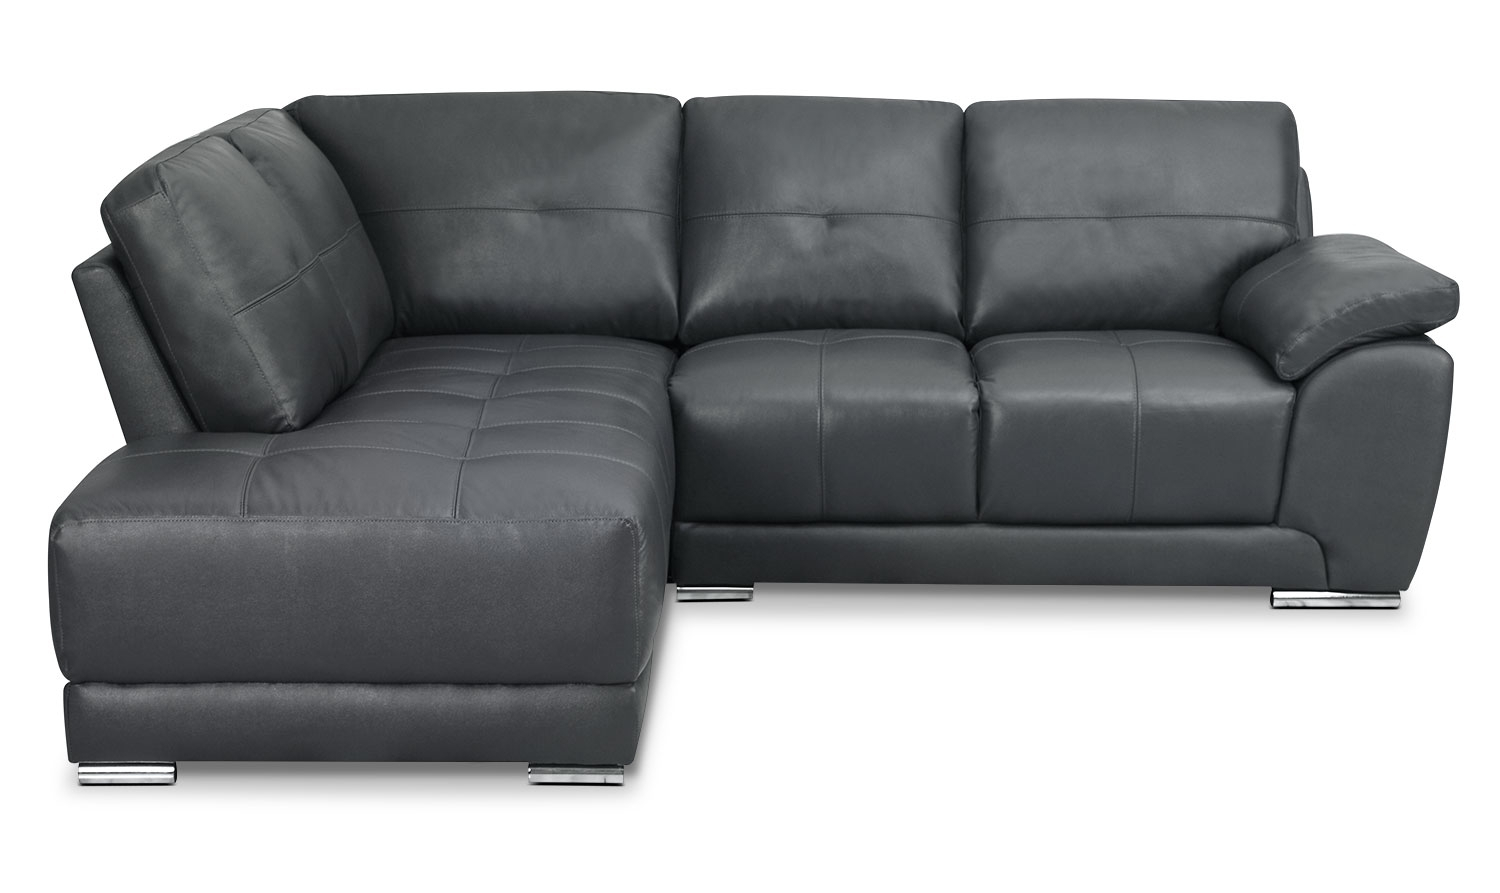 The Brick Canada Sectional Sofa | Functionalities Within Sectional Sofas At Brick (View 13 of 15)